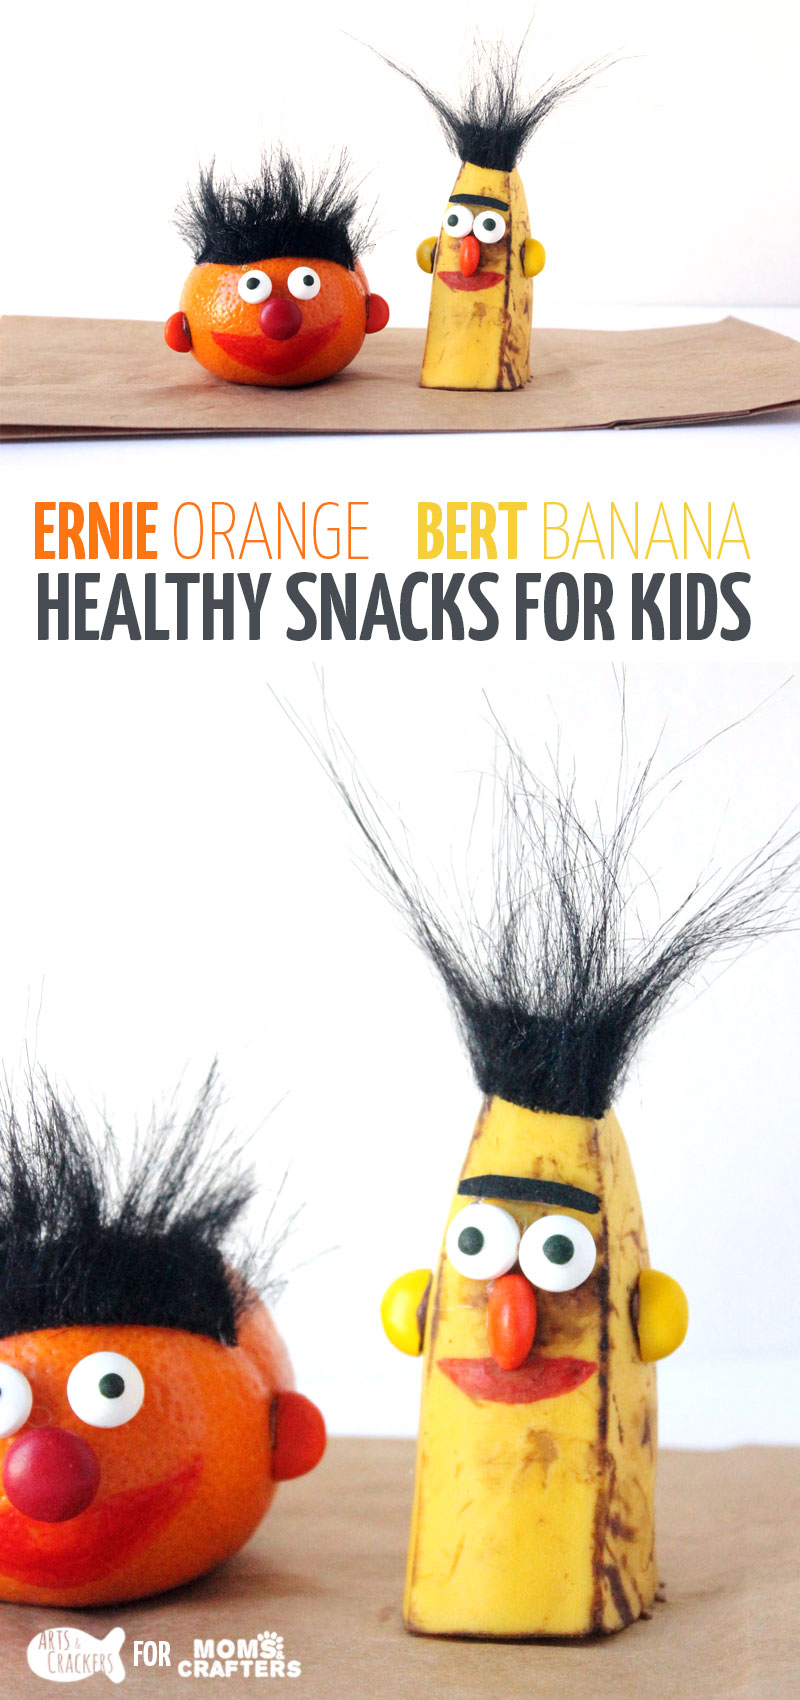 Make adorable Bert and Ernie snacks - perfect snack idea for picky kids who also happen to love Sesame Street! Great idea for a birthday party or for healthy school lunches.